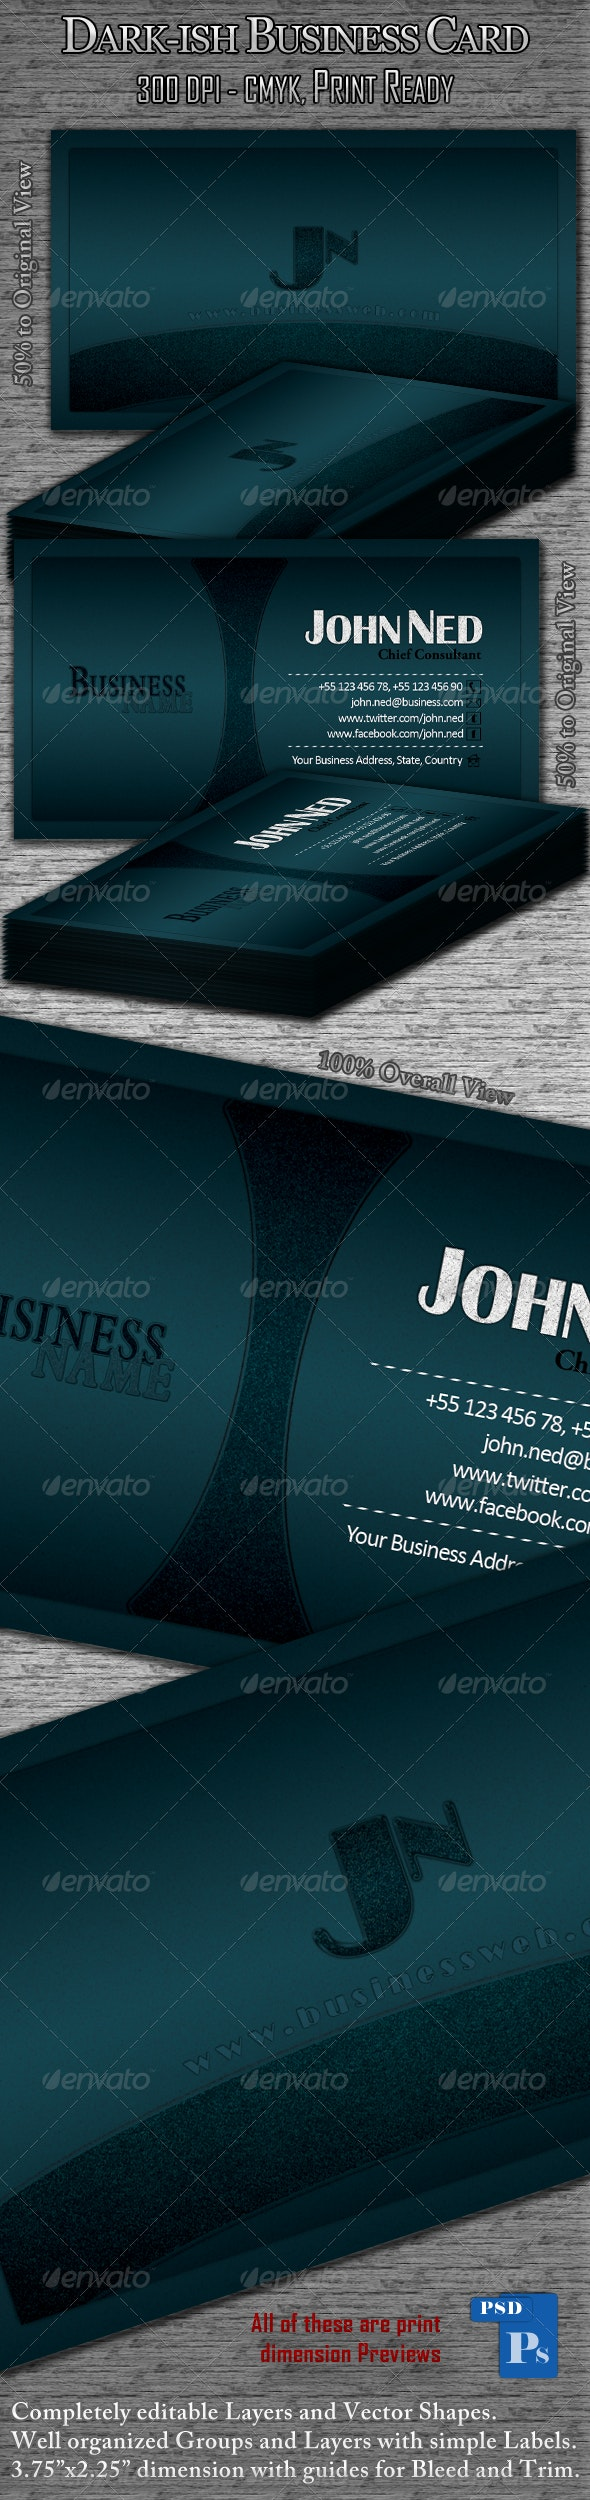 Dark-ish Business Card - Corporate Business Cards